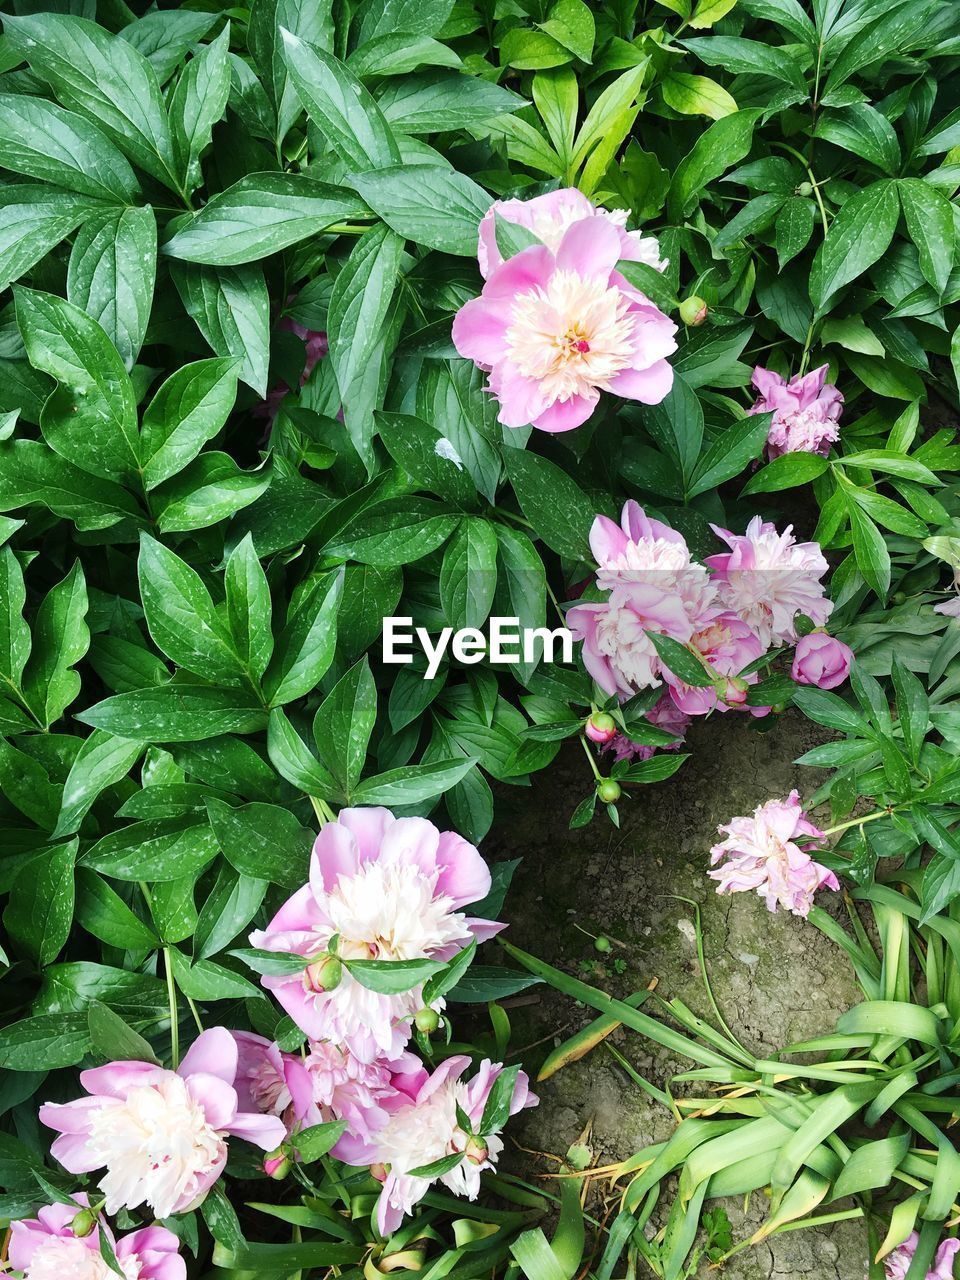 flowering plant, flower, freshness, beauty in nature, fragility, plant, vulnerability, petal, plant part, pink color, leaf, growth, flower head, inflorescence, nature, green color, close-up, no people, high angle view, day, outdoors